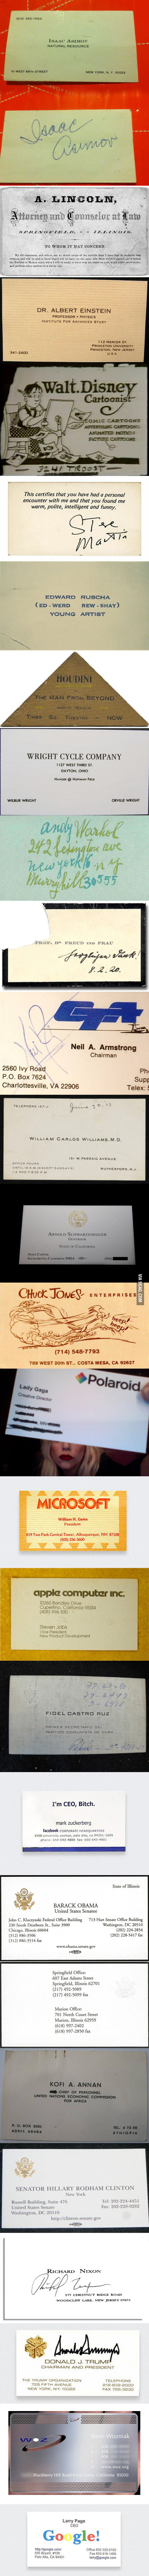 Some famous people's business cards